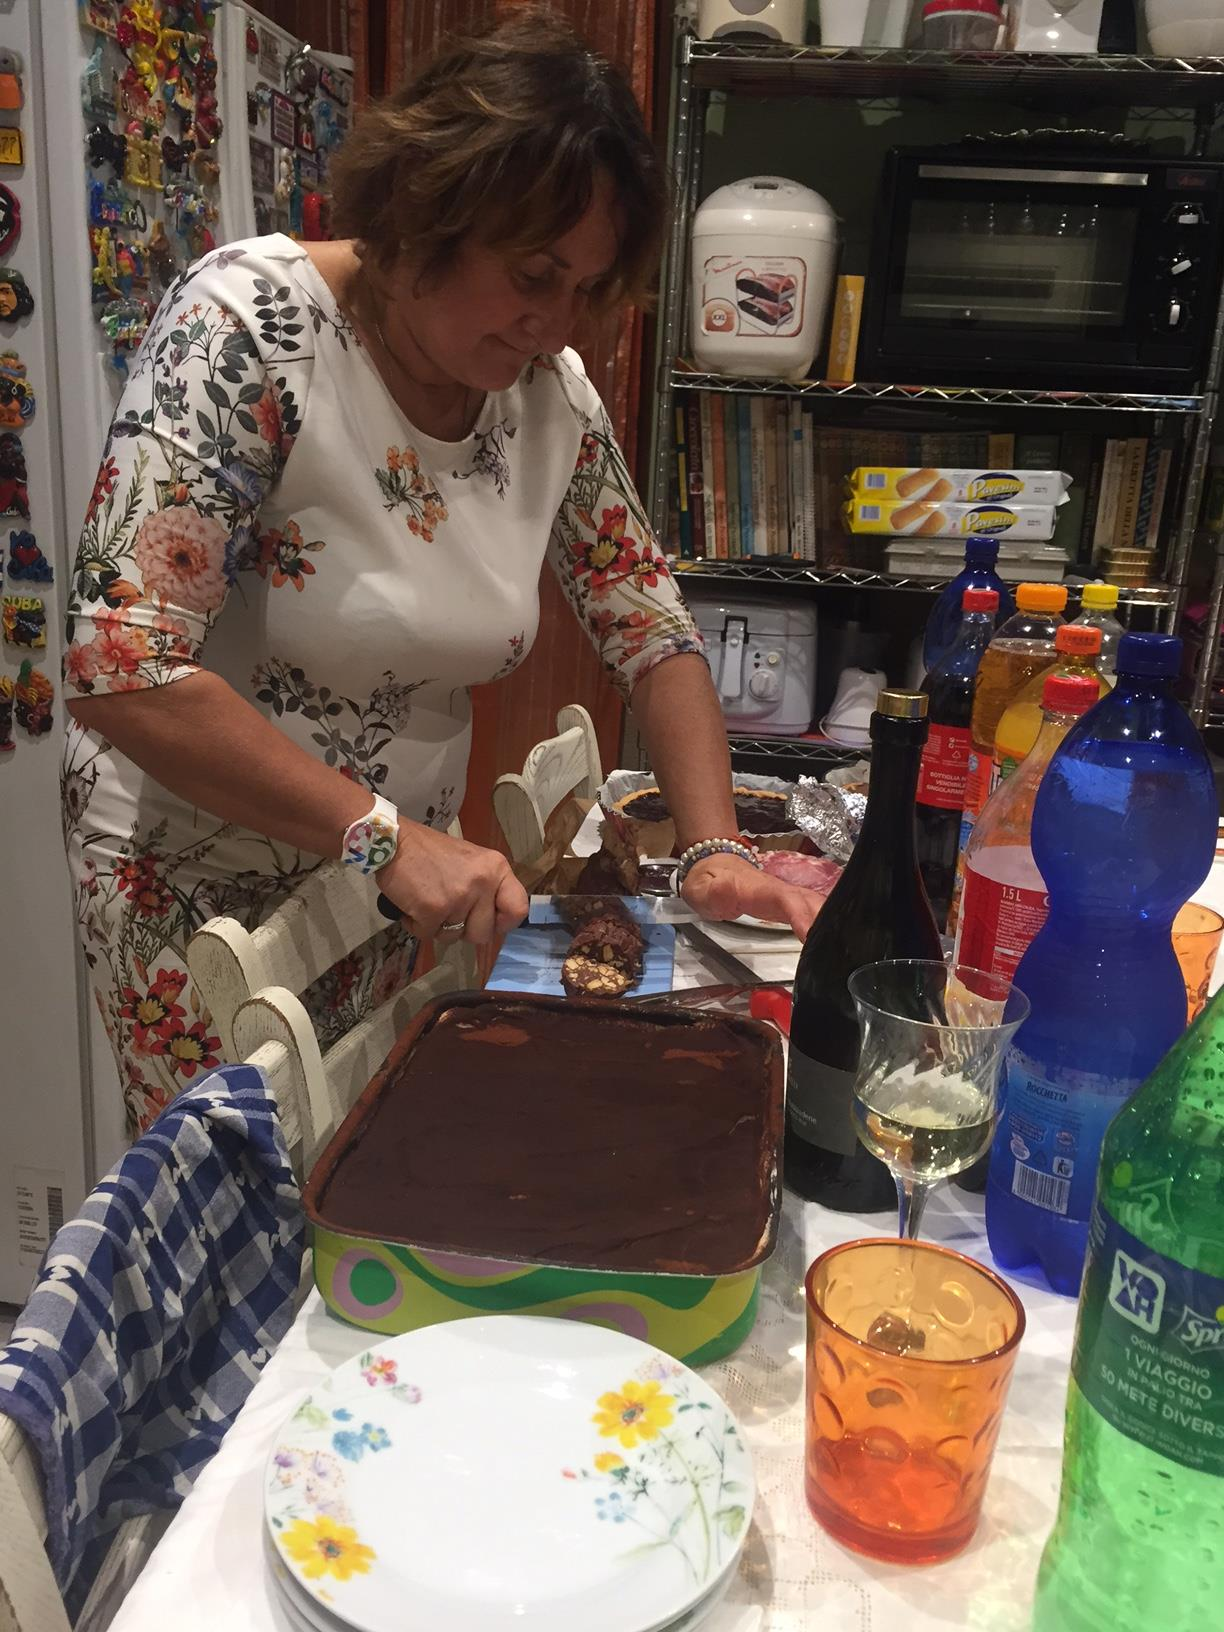 My host mom cutting our many desserts.